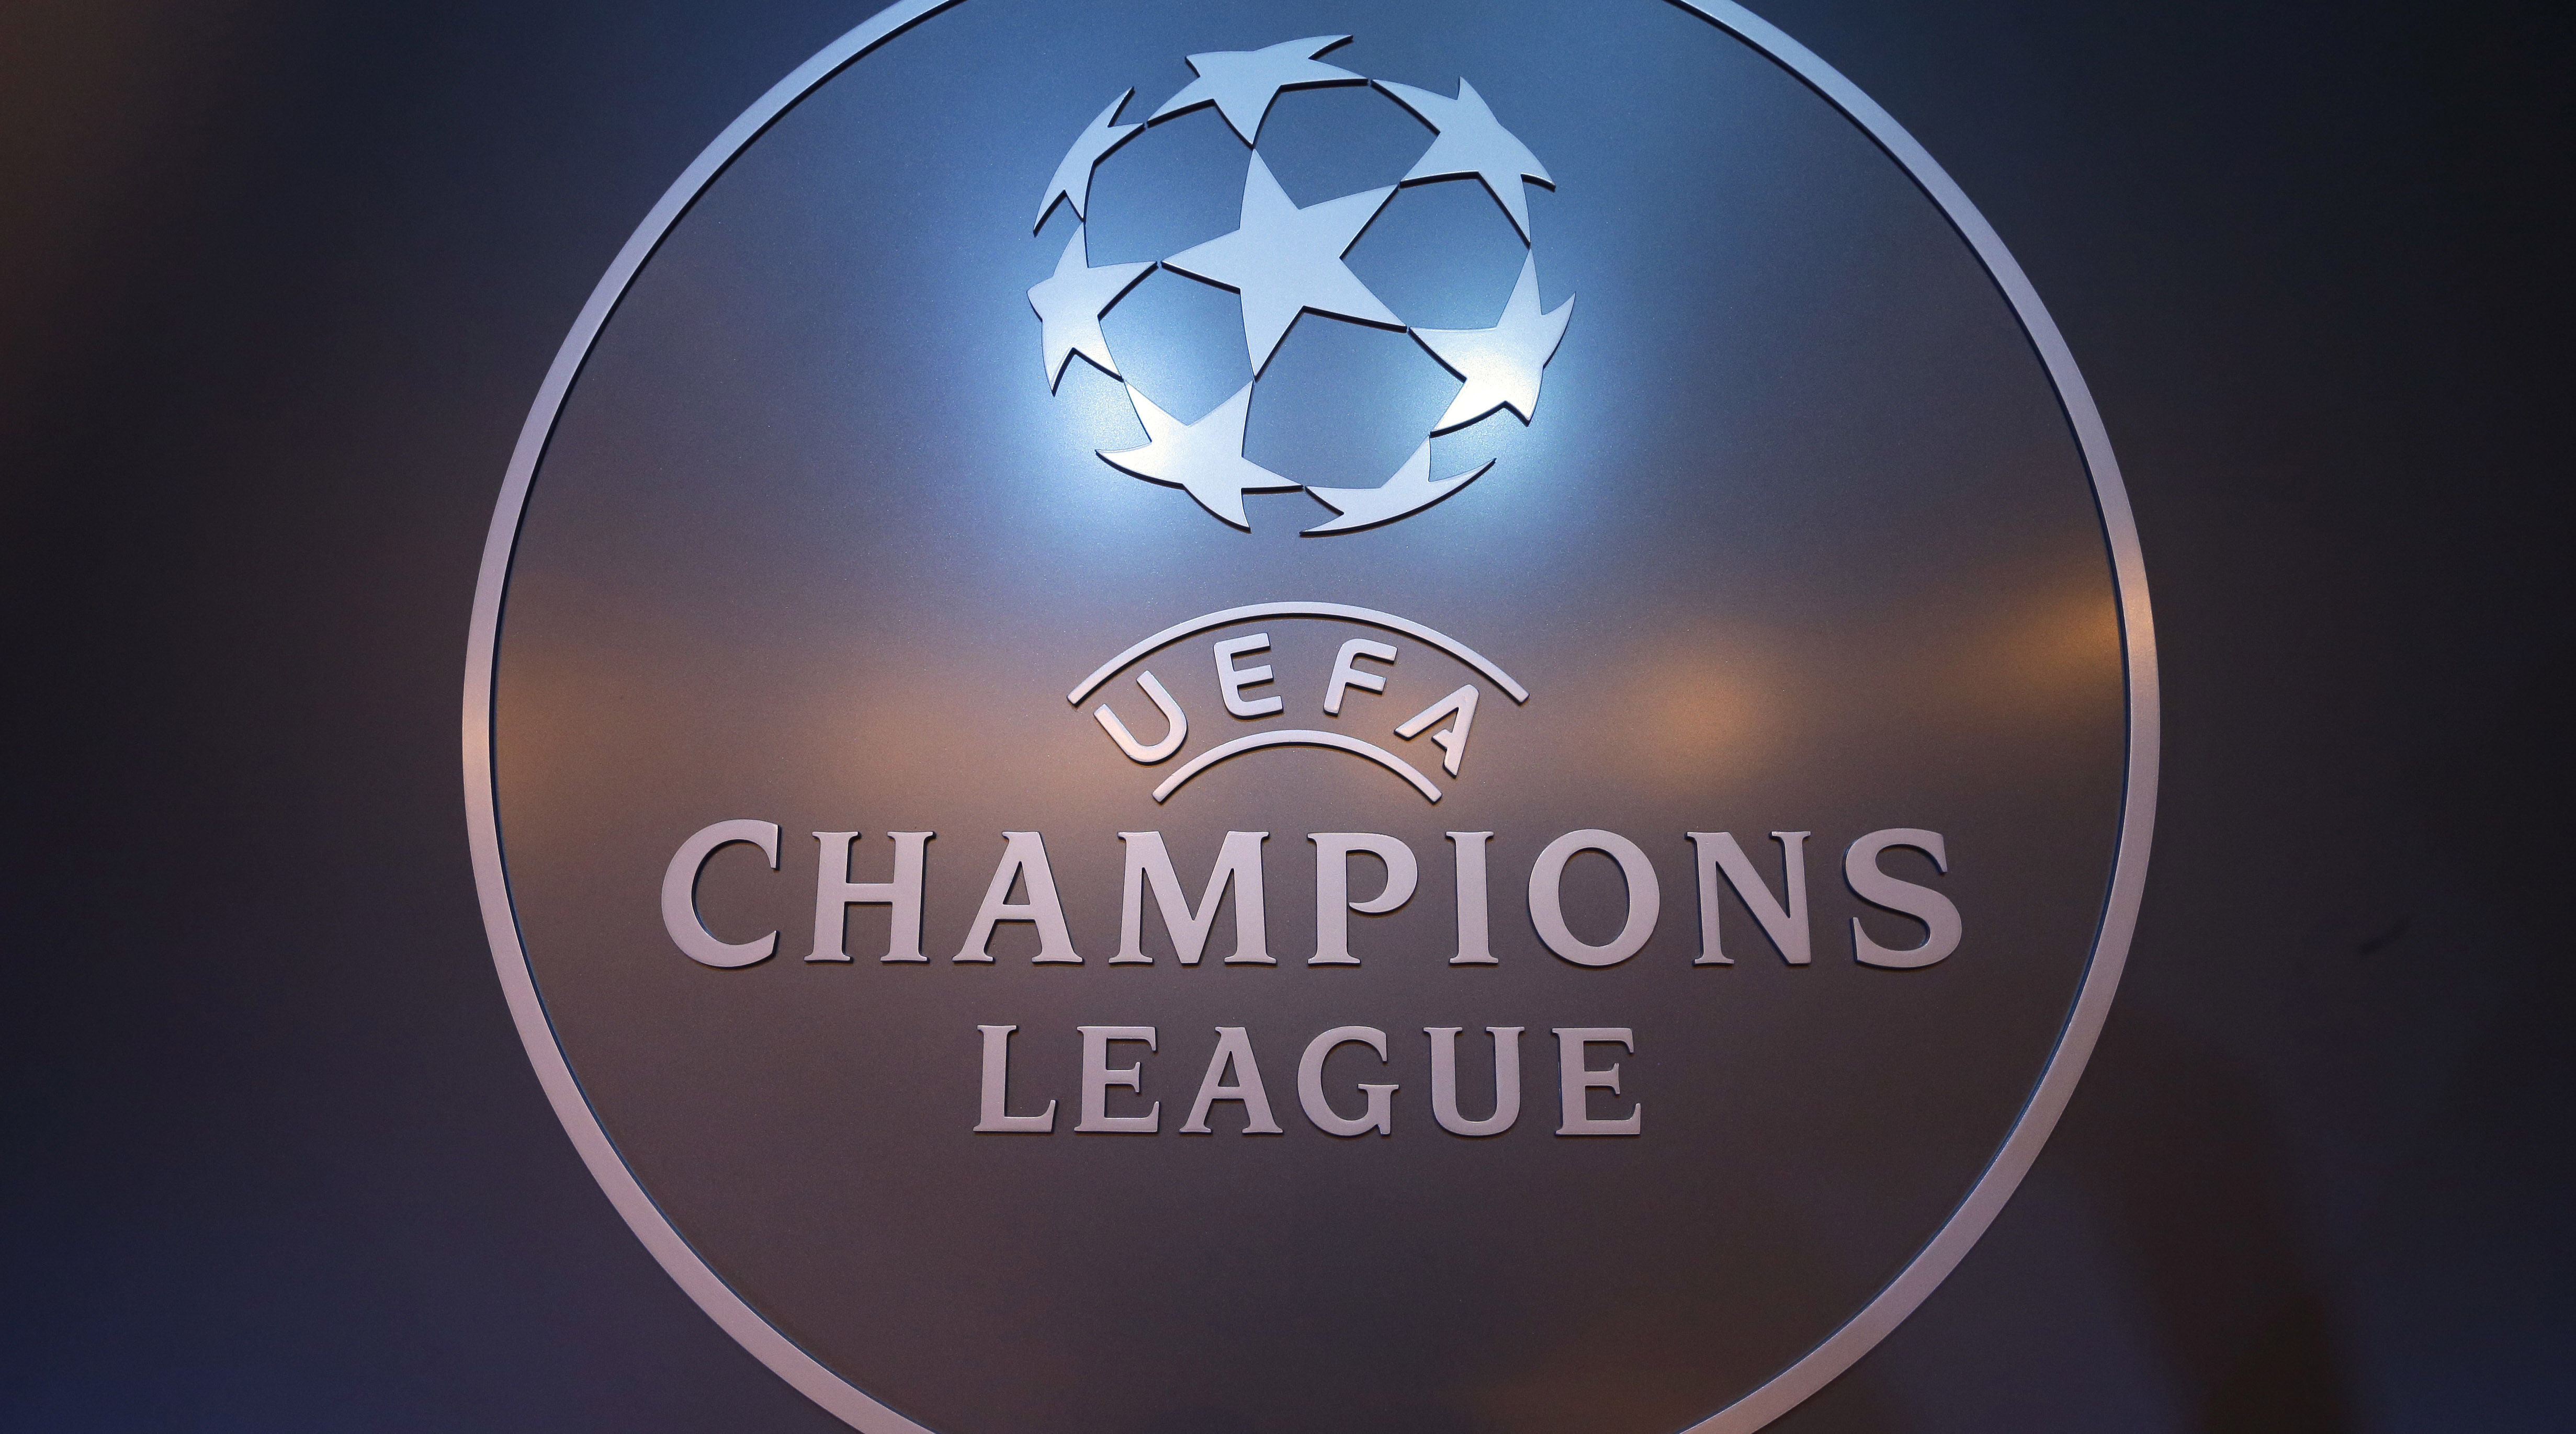 The Champions & European League is back!